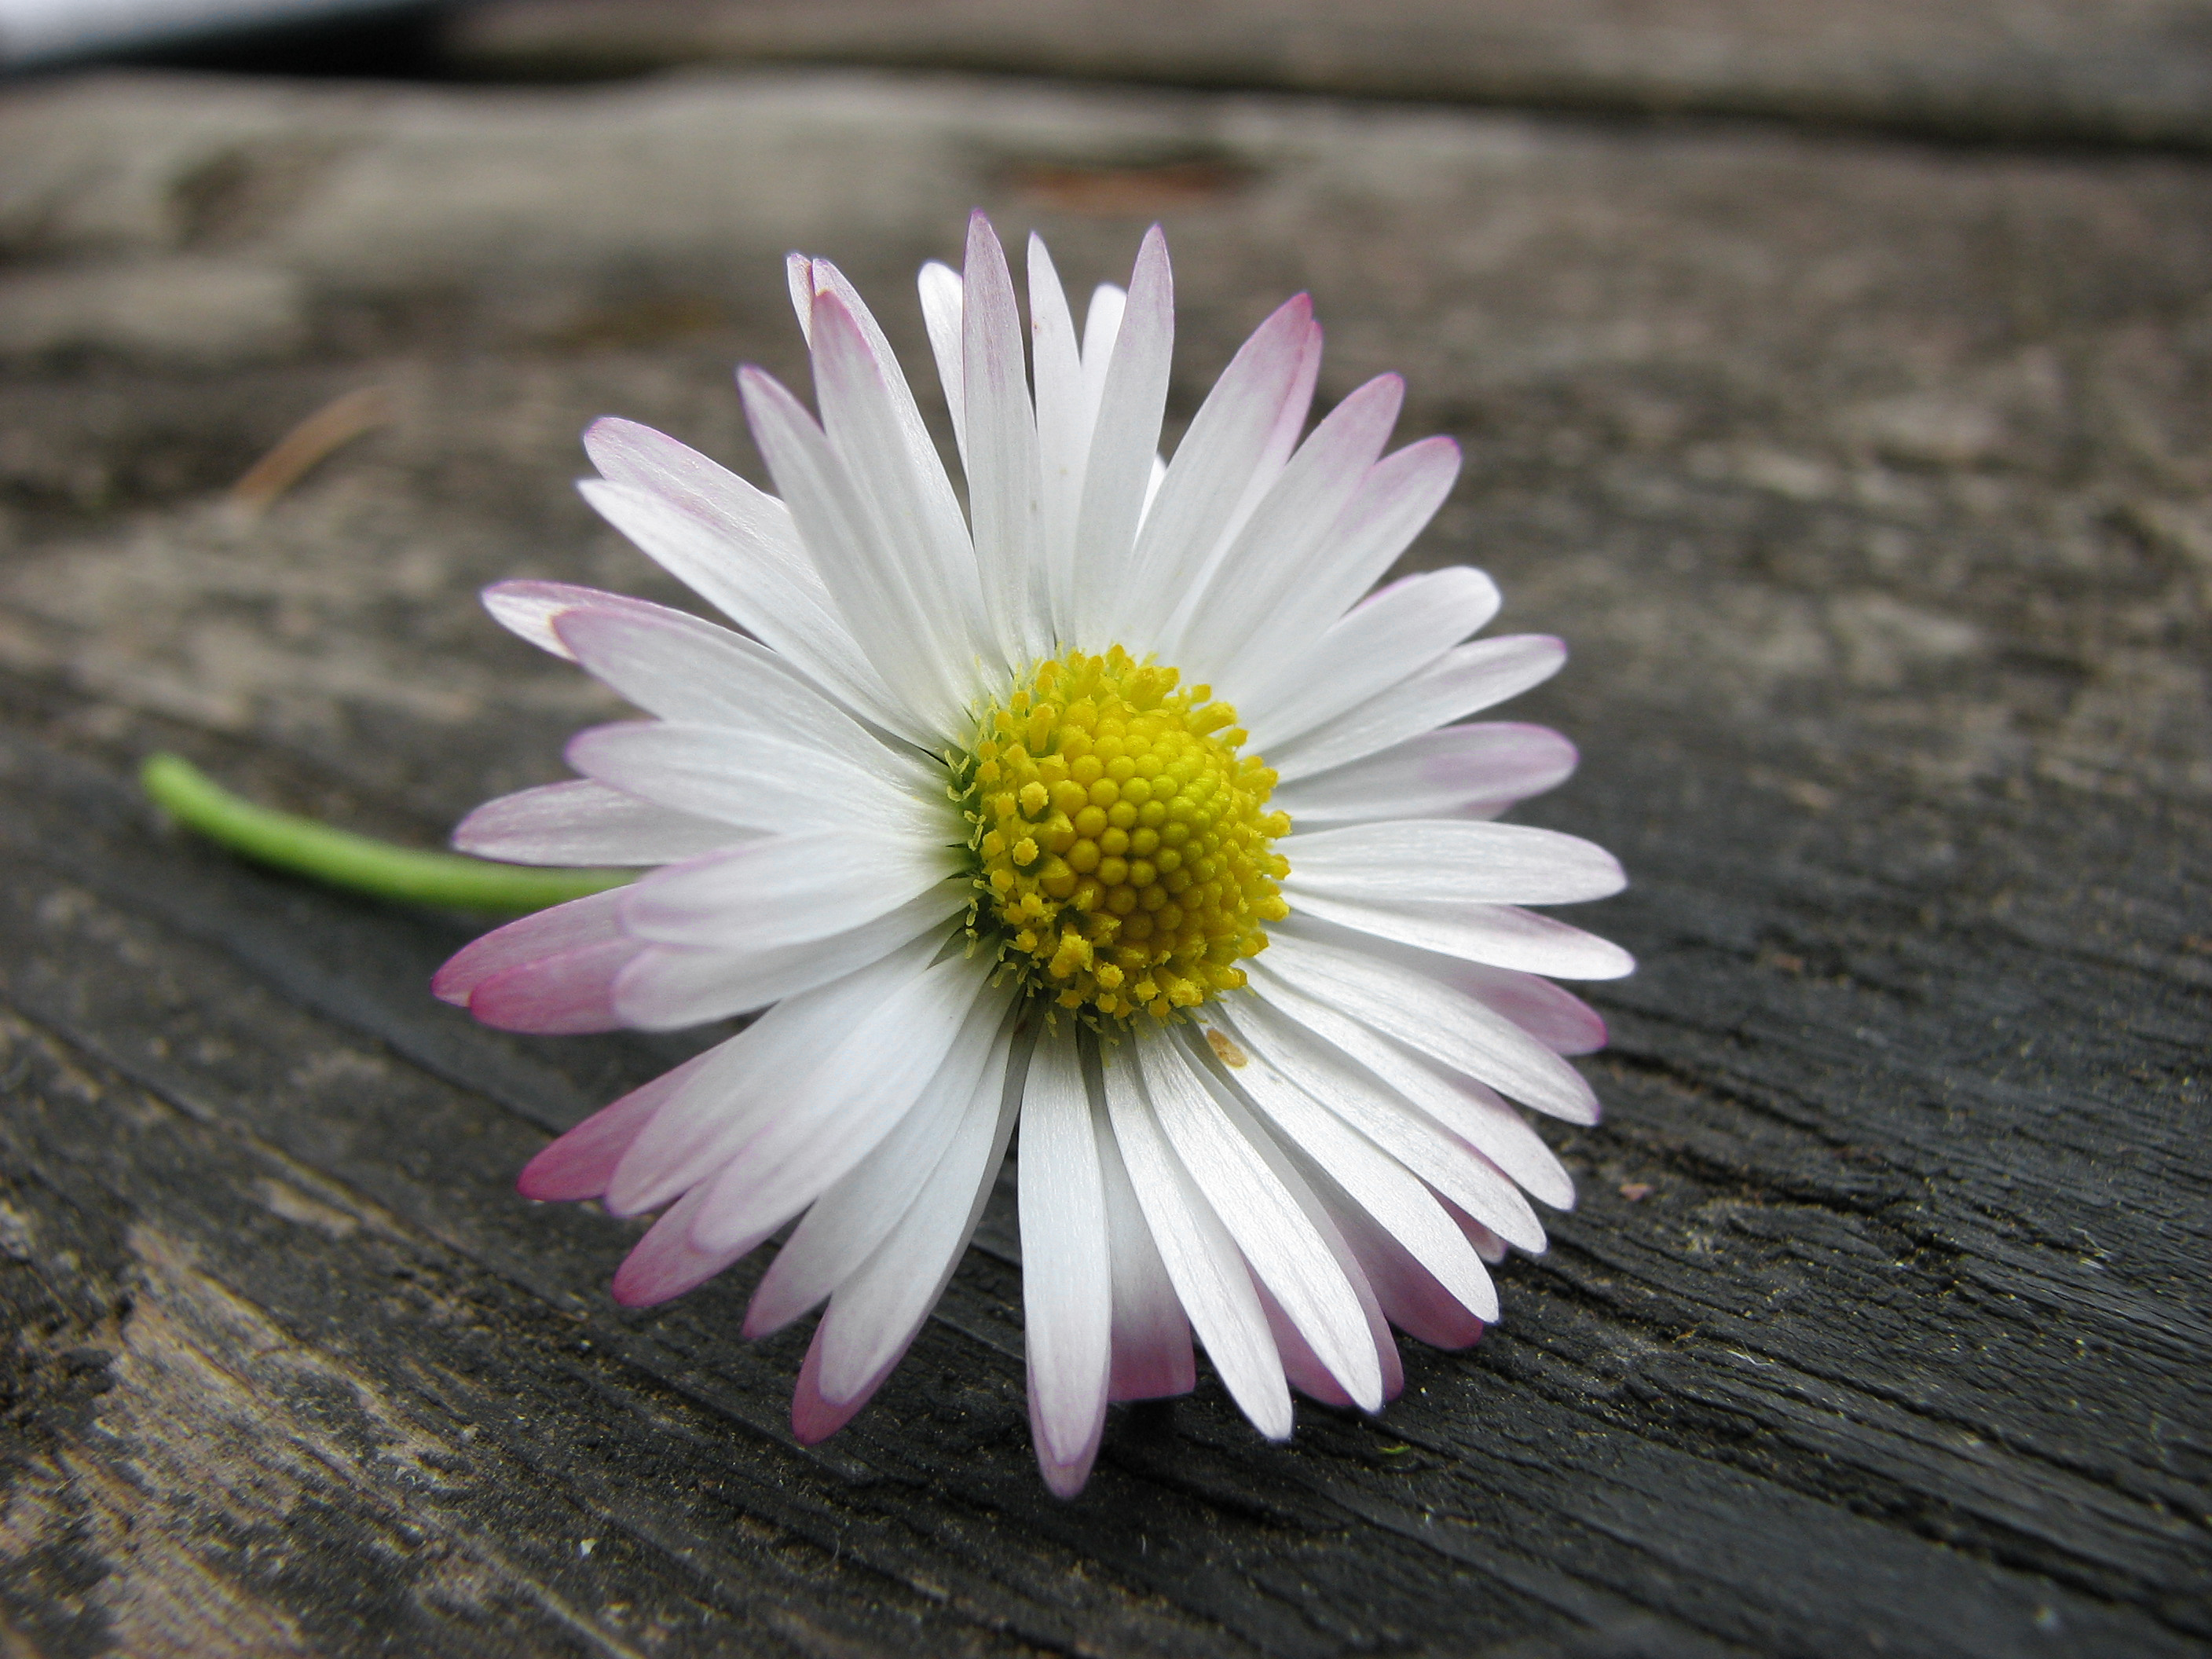 25 Beautiful and Vivid Daisy Images